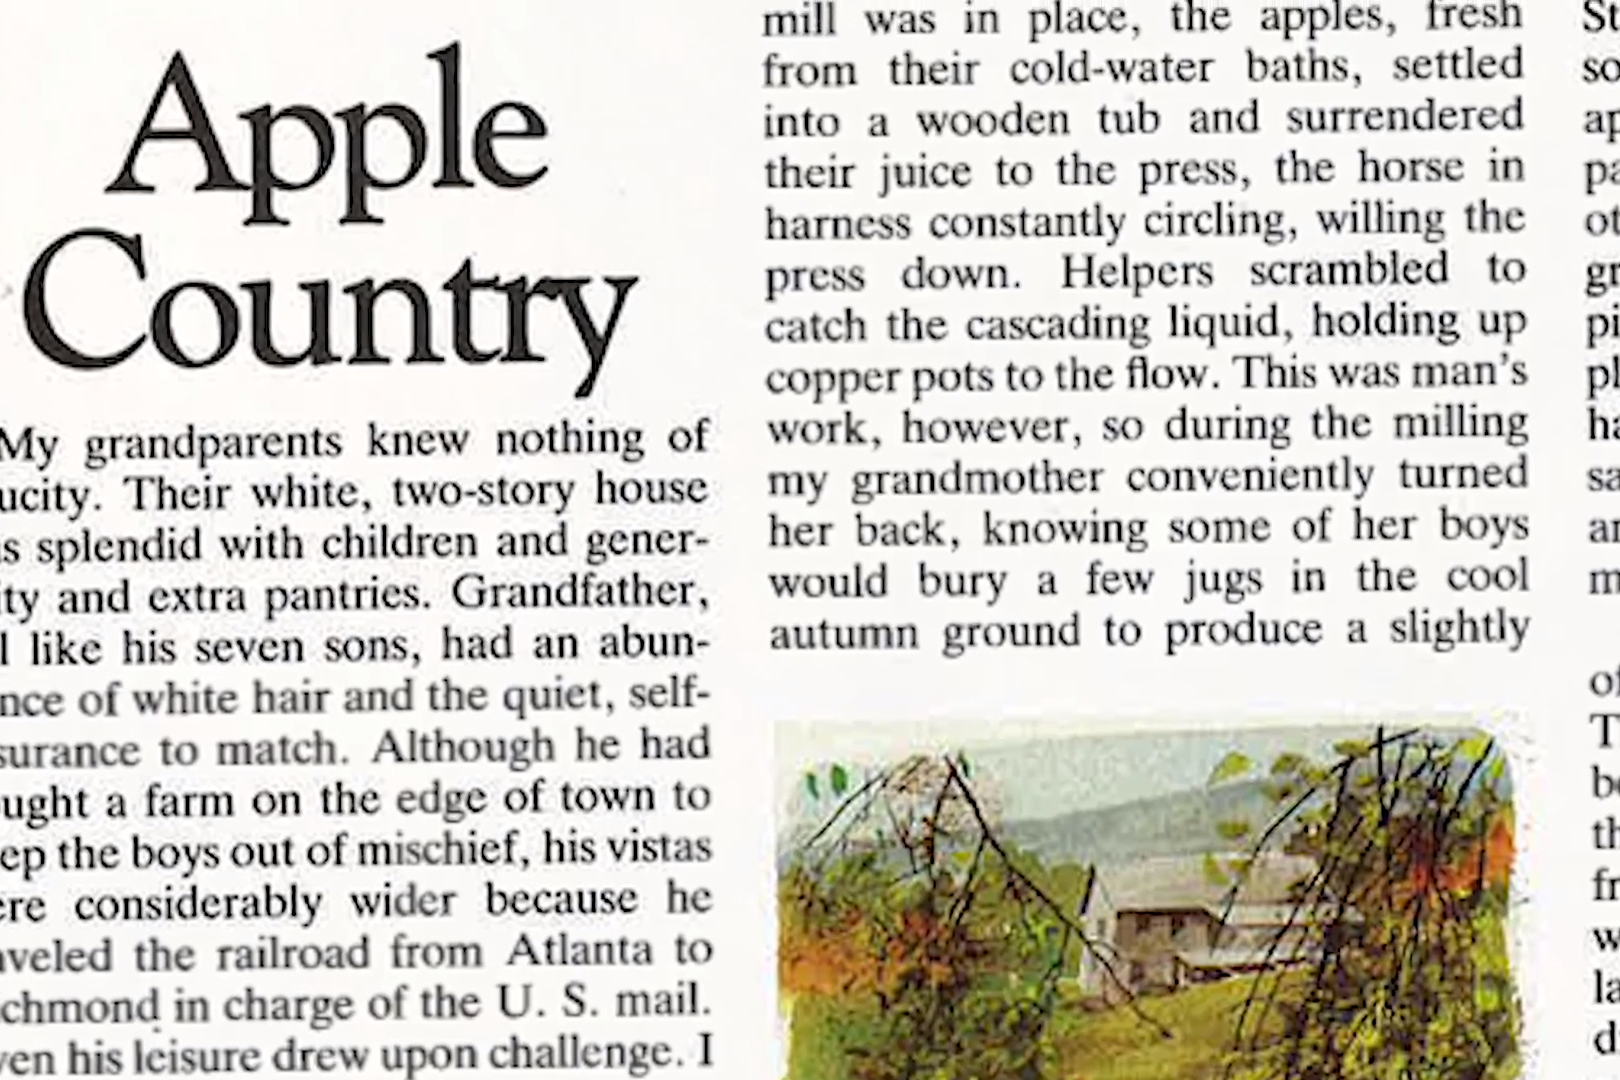 Stories Of The South: Apple Country